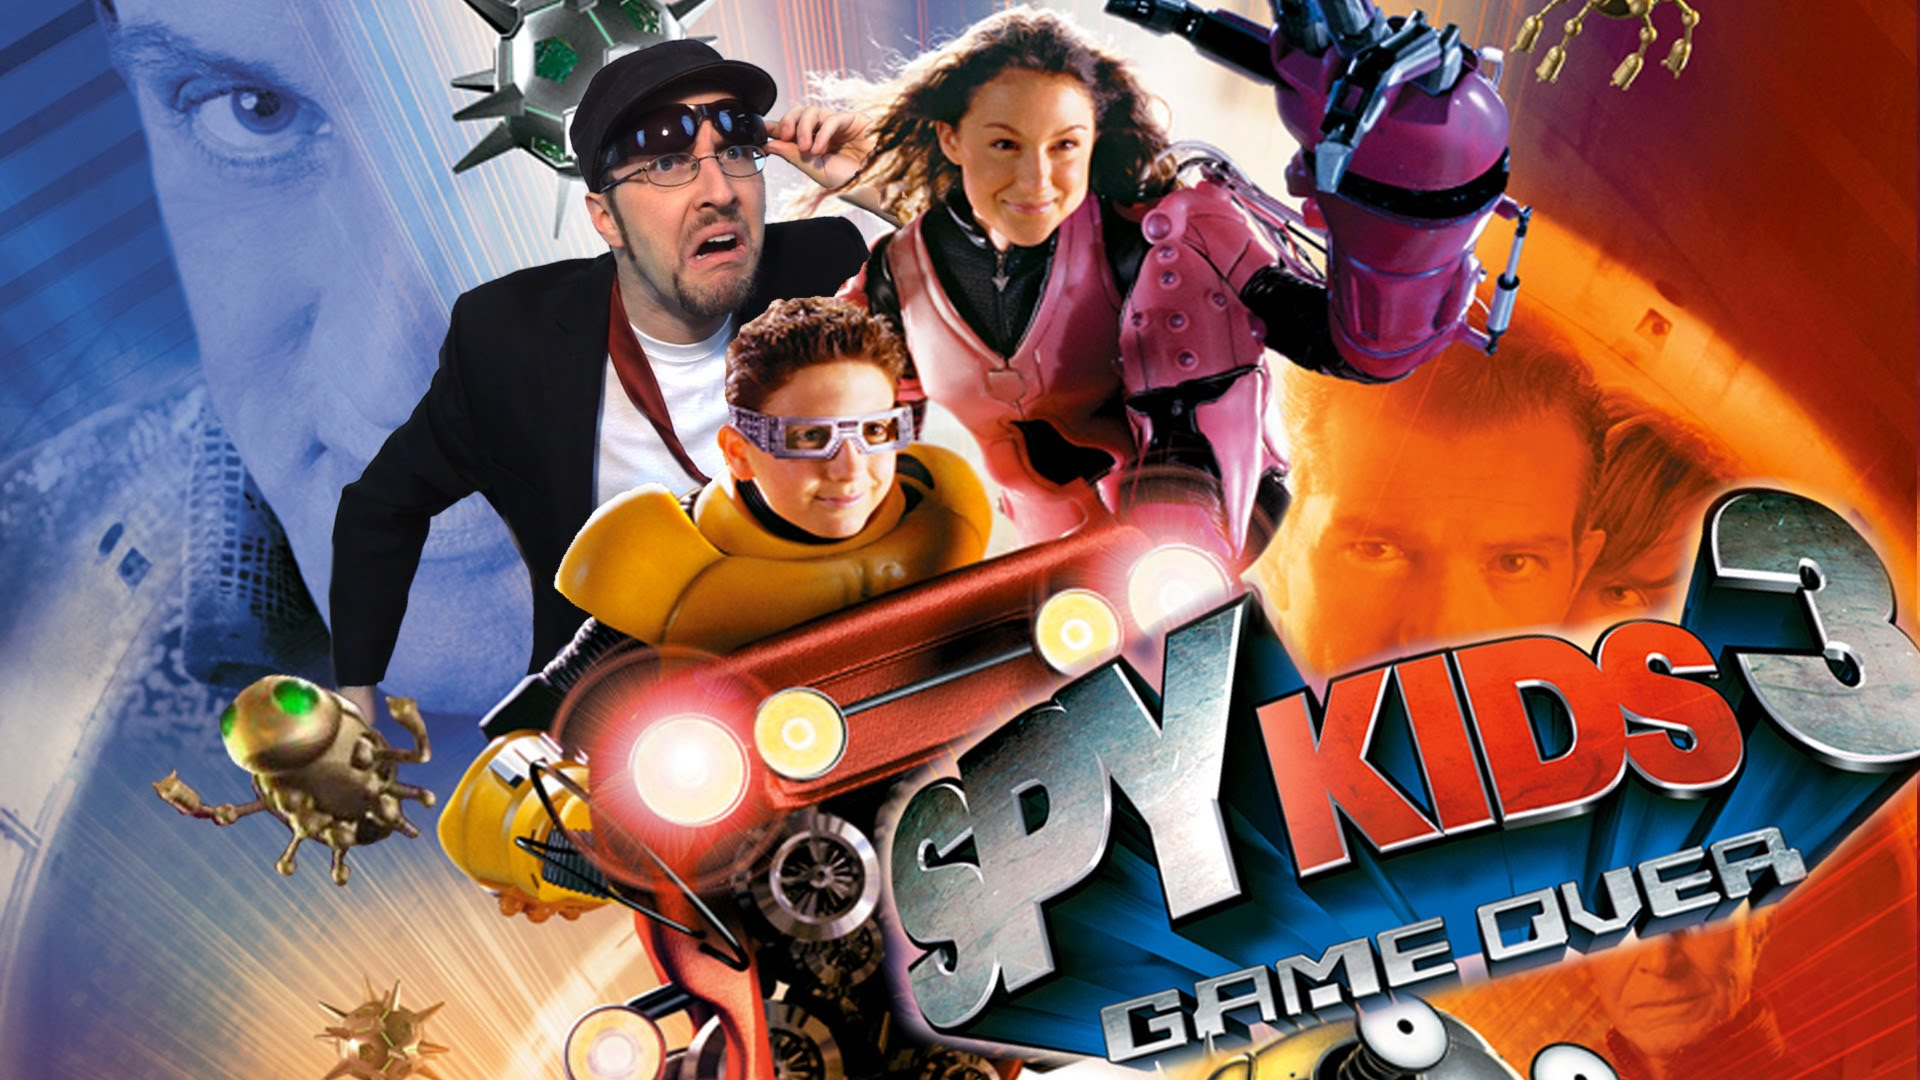 Spy Kids 3D: Game Over | Channel Awesome | FANDOM powered by